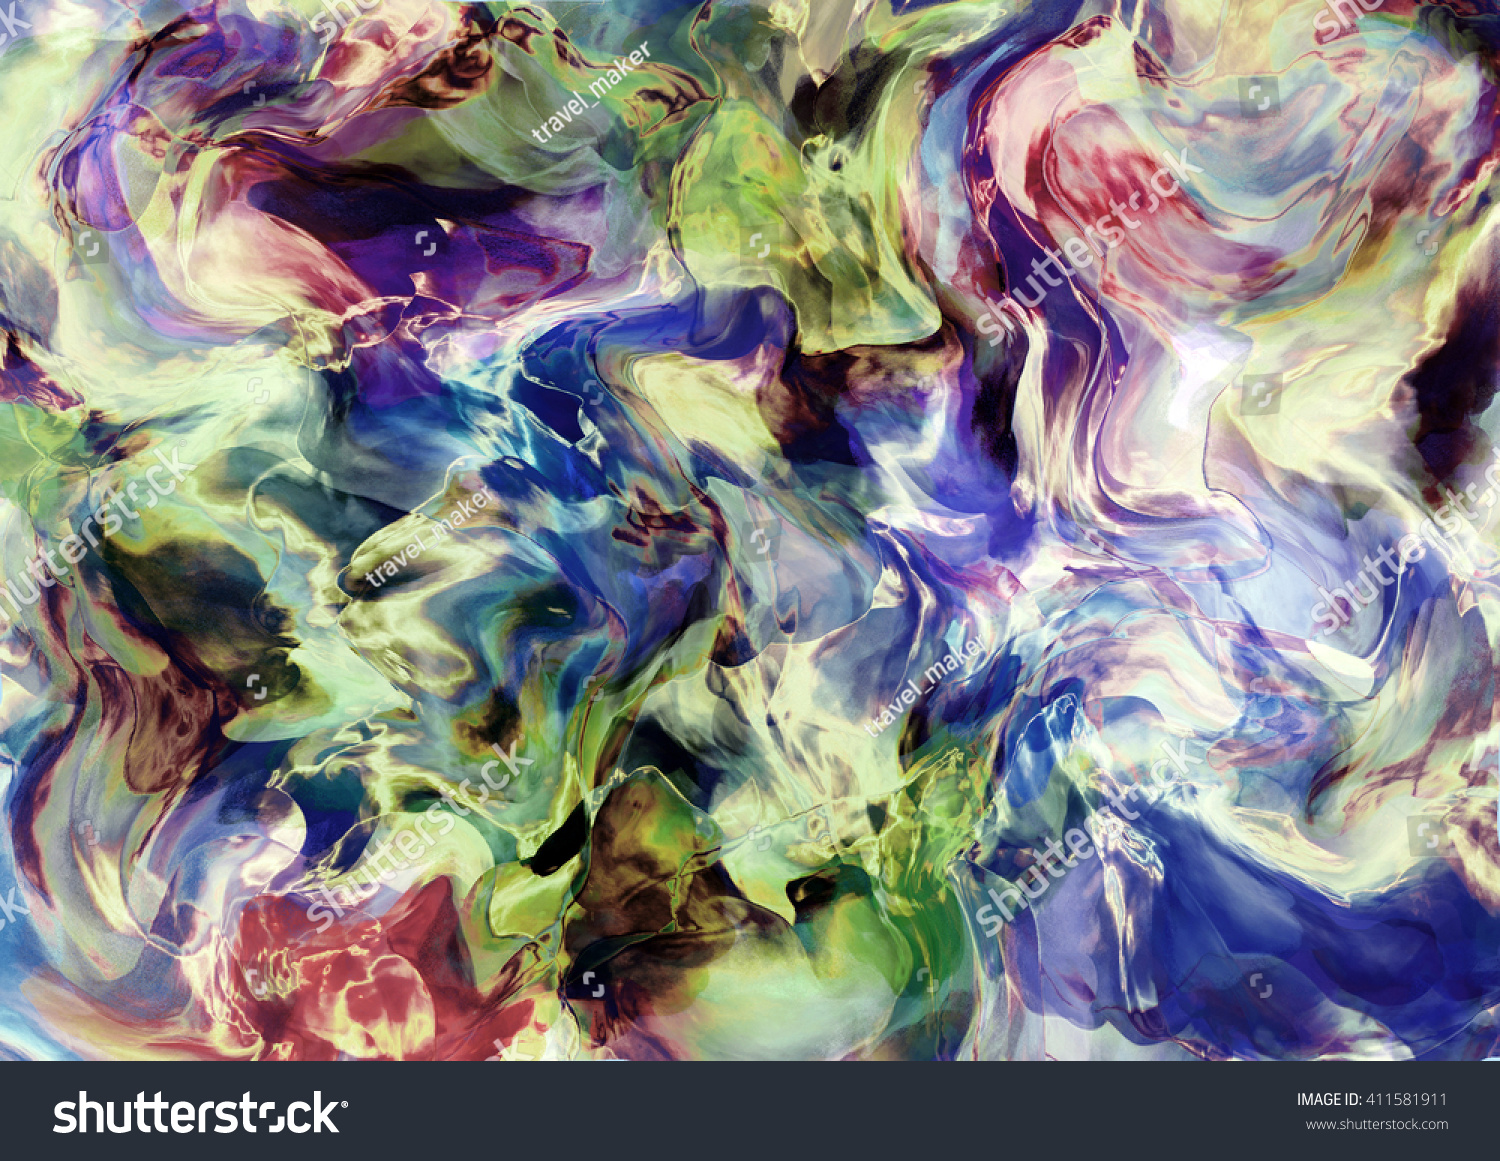 Simple Wallpaper Marble Painting - stock-photo-abstract-wallpaper-texture-of-bright-color-marble-color-with-glass-and-splattered-paint-effect-411581911  Collection_15125.jpg